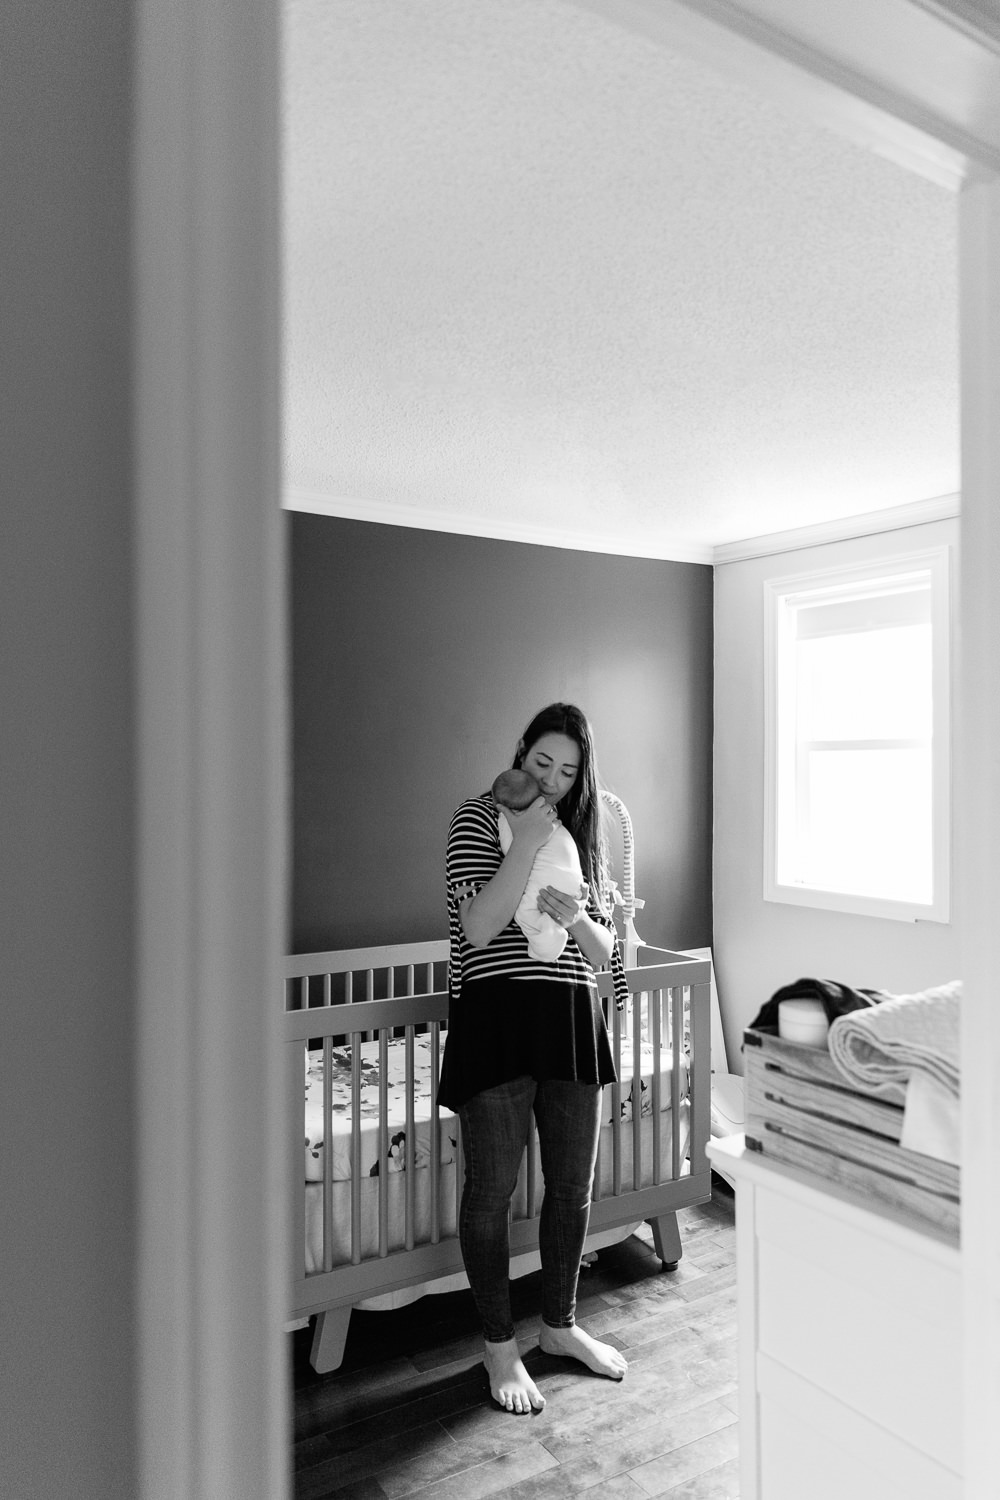 new mom standing in nursery in front of crib holding 2 week old sleeping baby girl wrapped in white swaddle to her chest, mother's eyes closed - Stouffville Lifestyle Photos